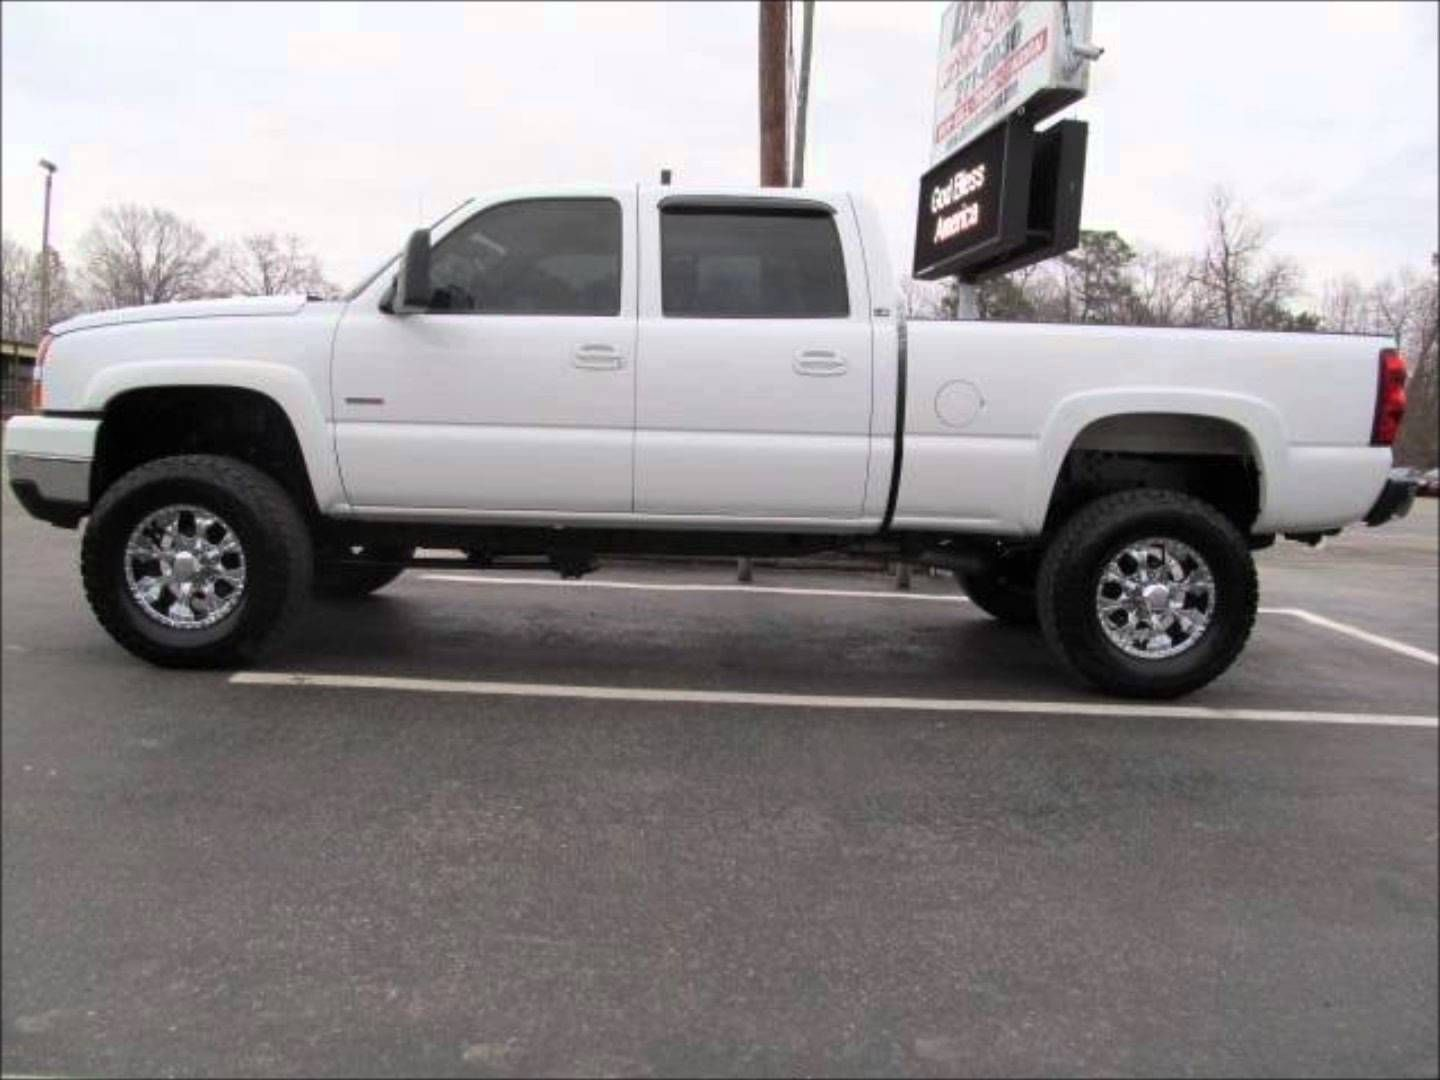 All Chevy 87 chevy diesel : 2005 Chevy Silverado 2500 Diesel Lifted Truck For Sale http://www ...